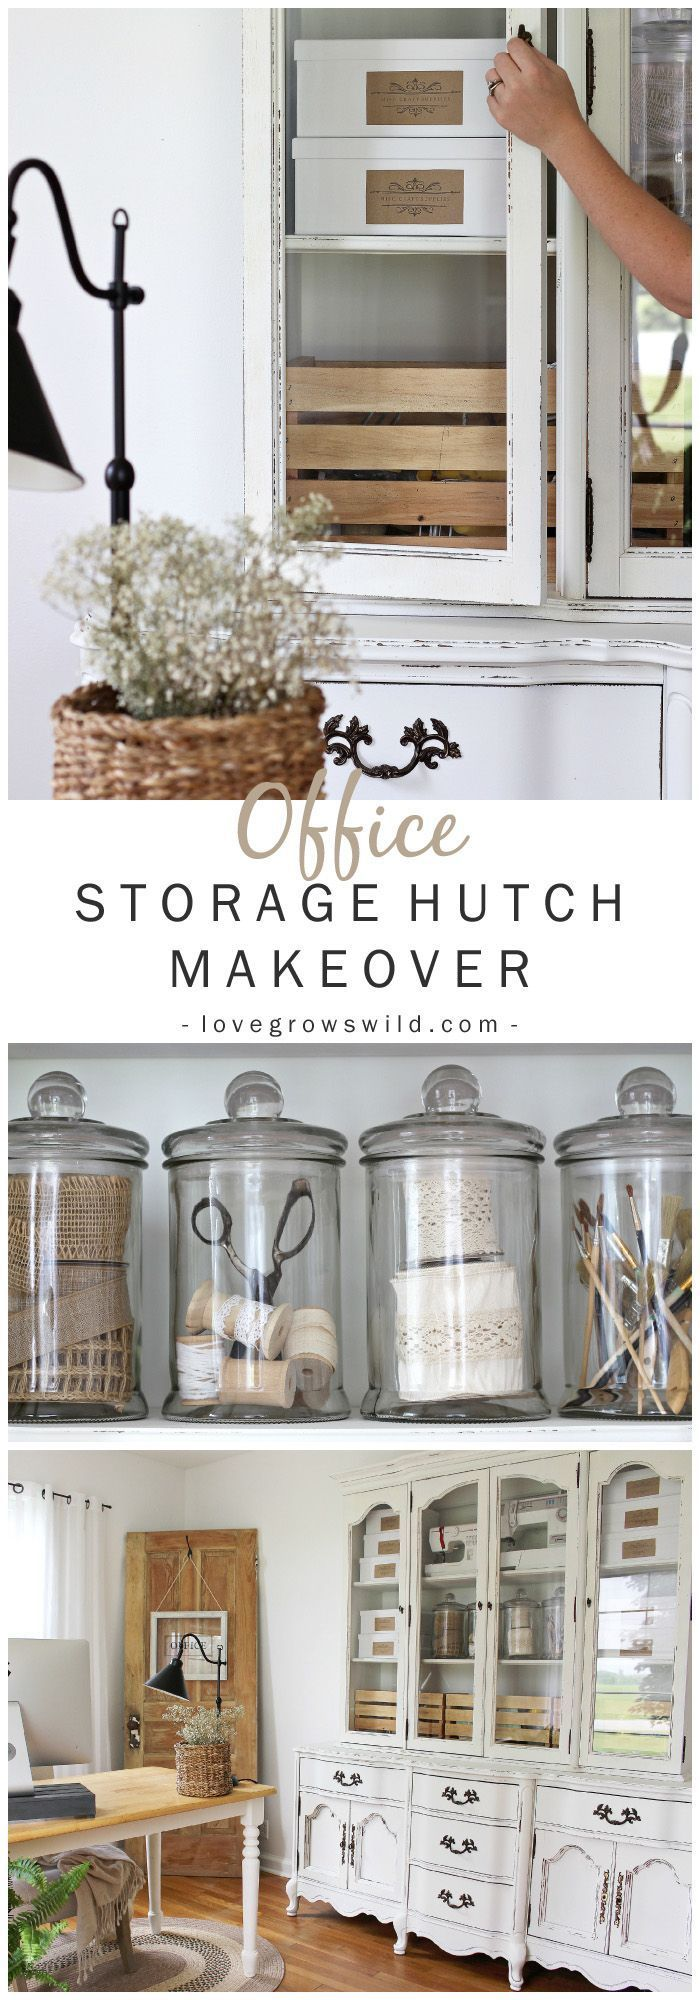 Old hutches and china cabinets make great storage for an office